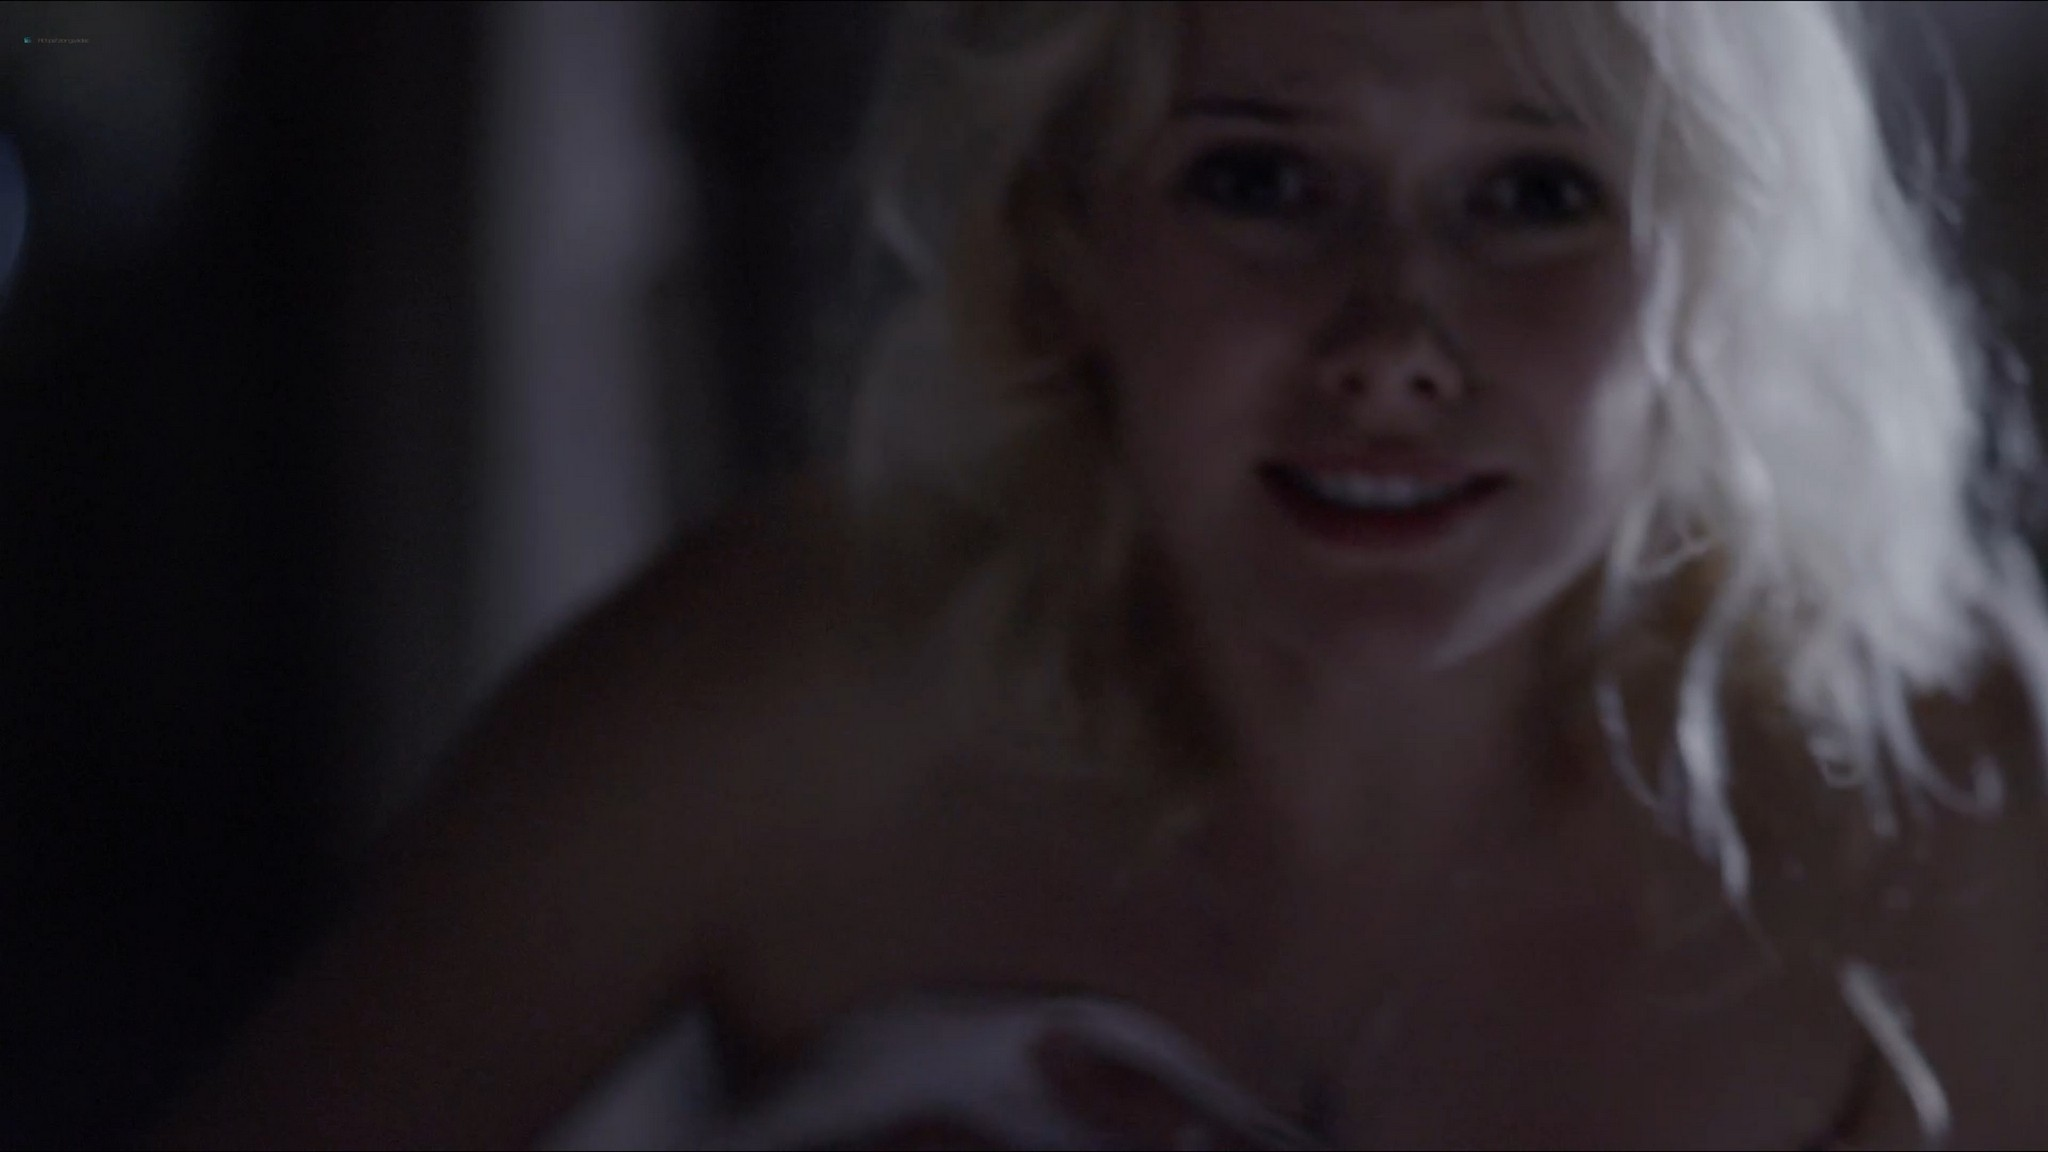 Amelia Eve cute and some sex The Darkness 2021 1080p Web 8